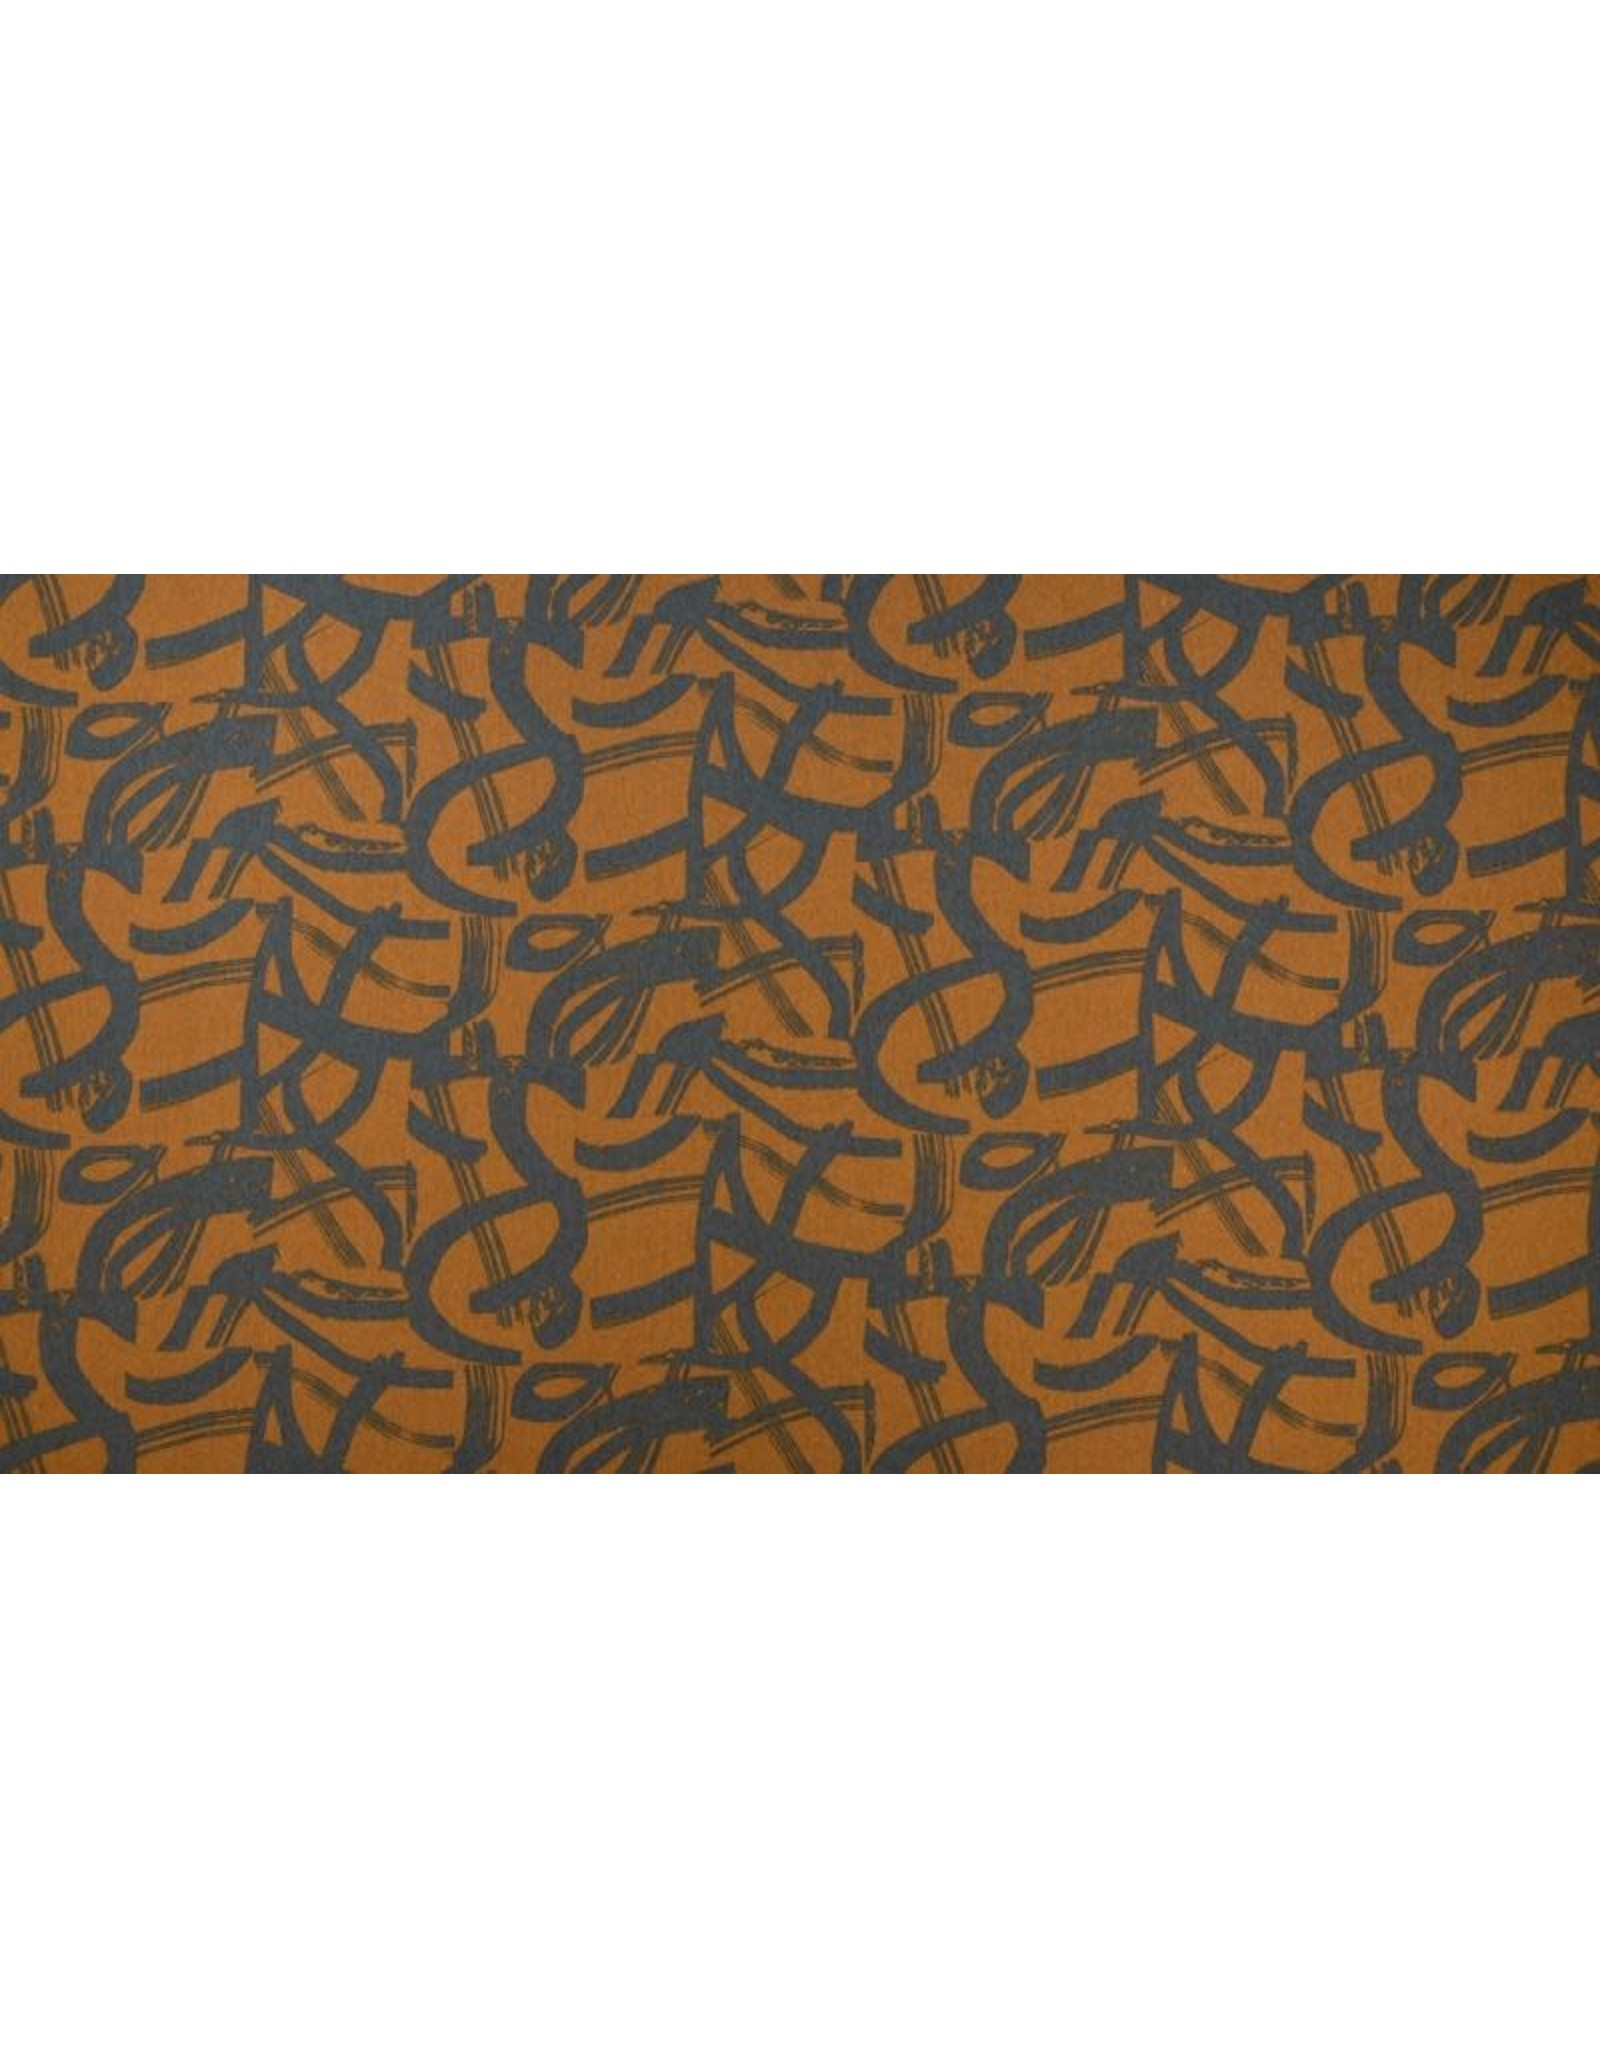 Cotton + Steel Linen/Cotton Canvas, In Bloom, On the Way in Golden, Fabric Half-Yards ST105-GO5C